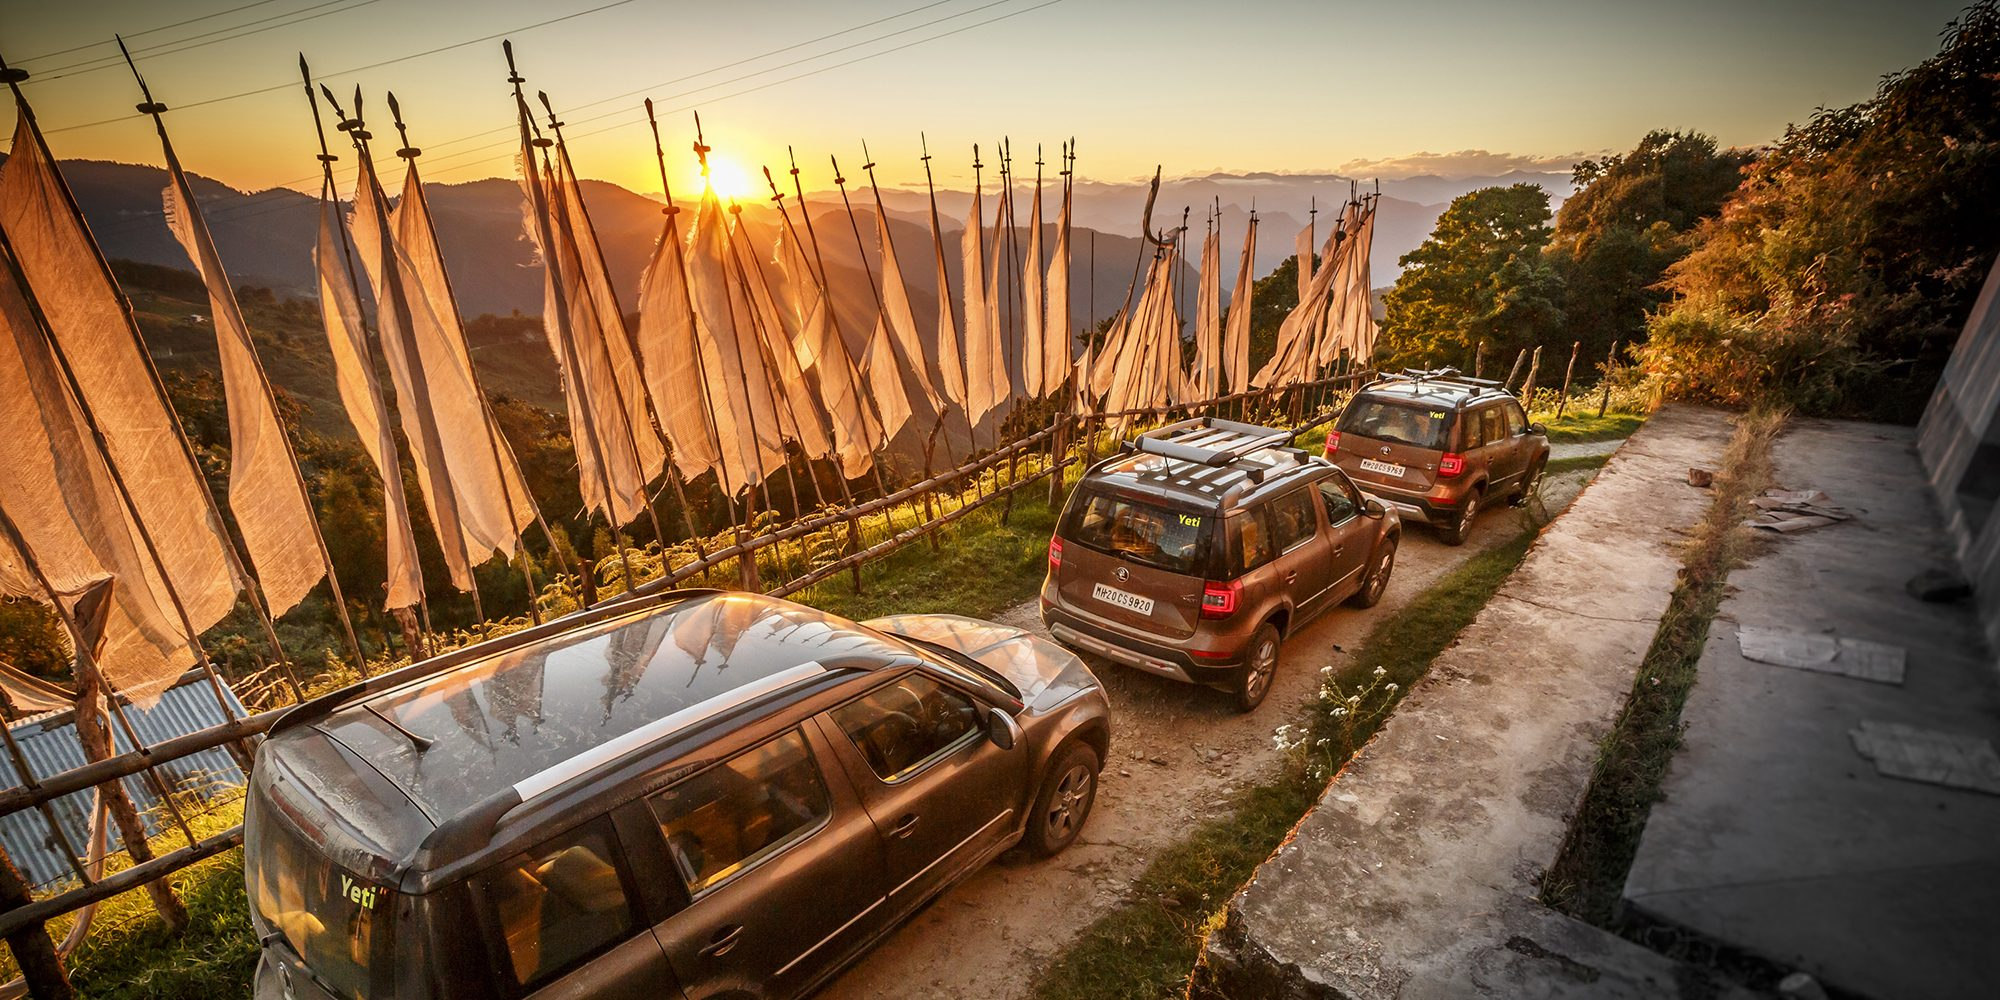 ŠKODA took three YETIs on an adventure into the wild of Bhutan in the hope for the glimpse of the mythical beast.